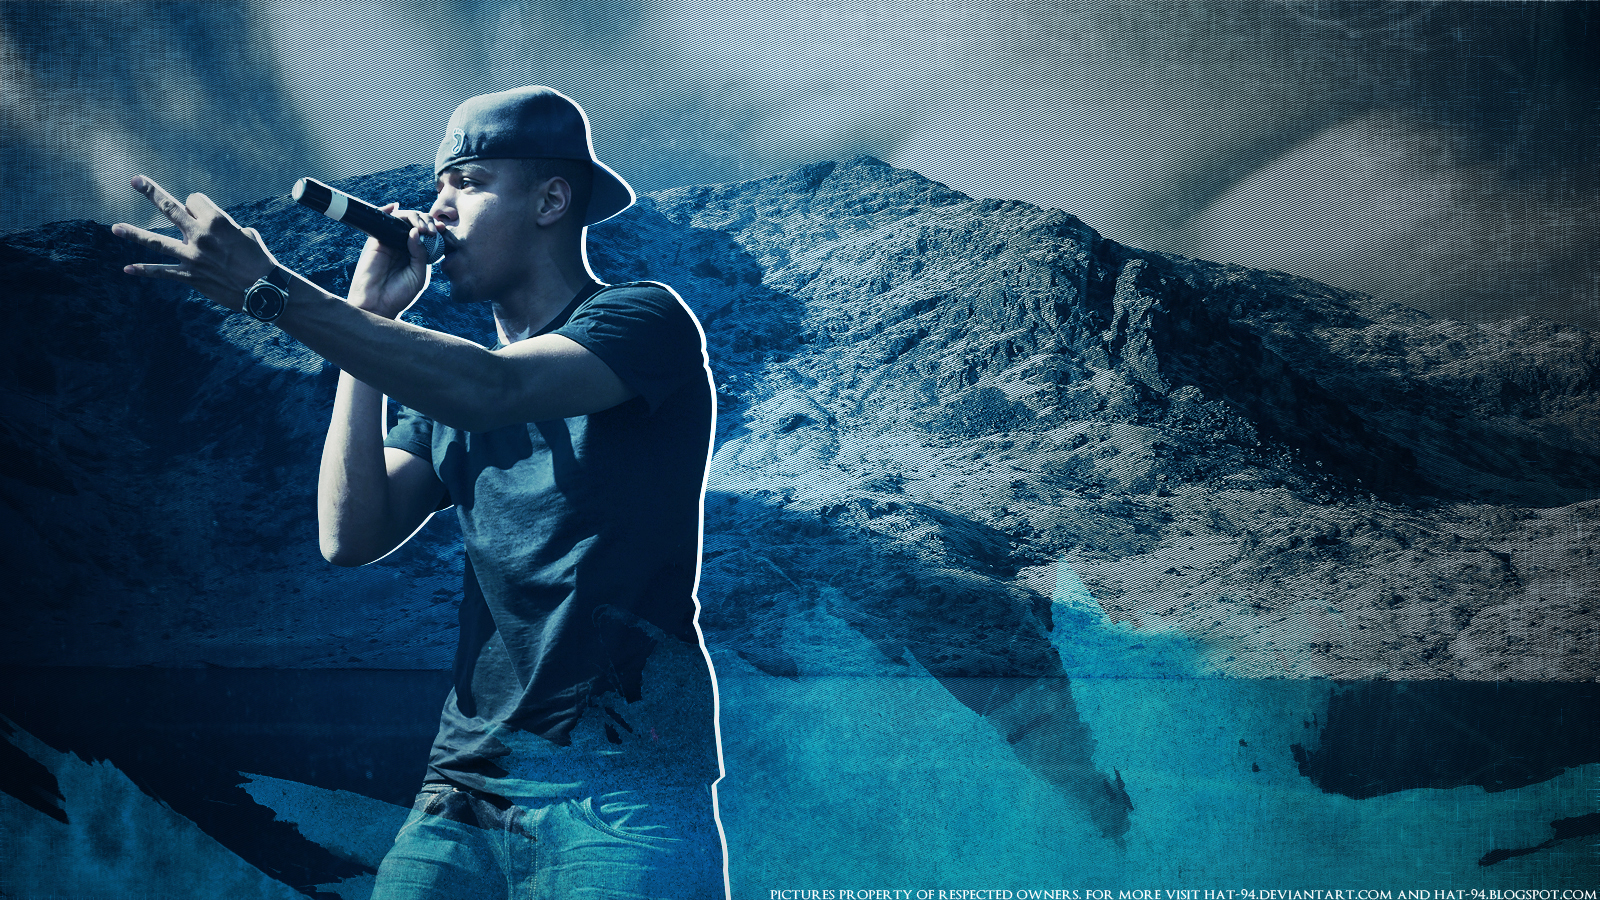 jcole wallpaper by hat 94 customization wallpaper people males j cole 1600x900